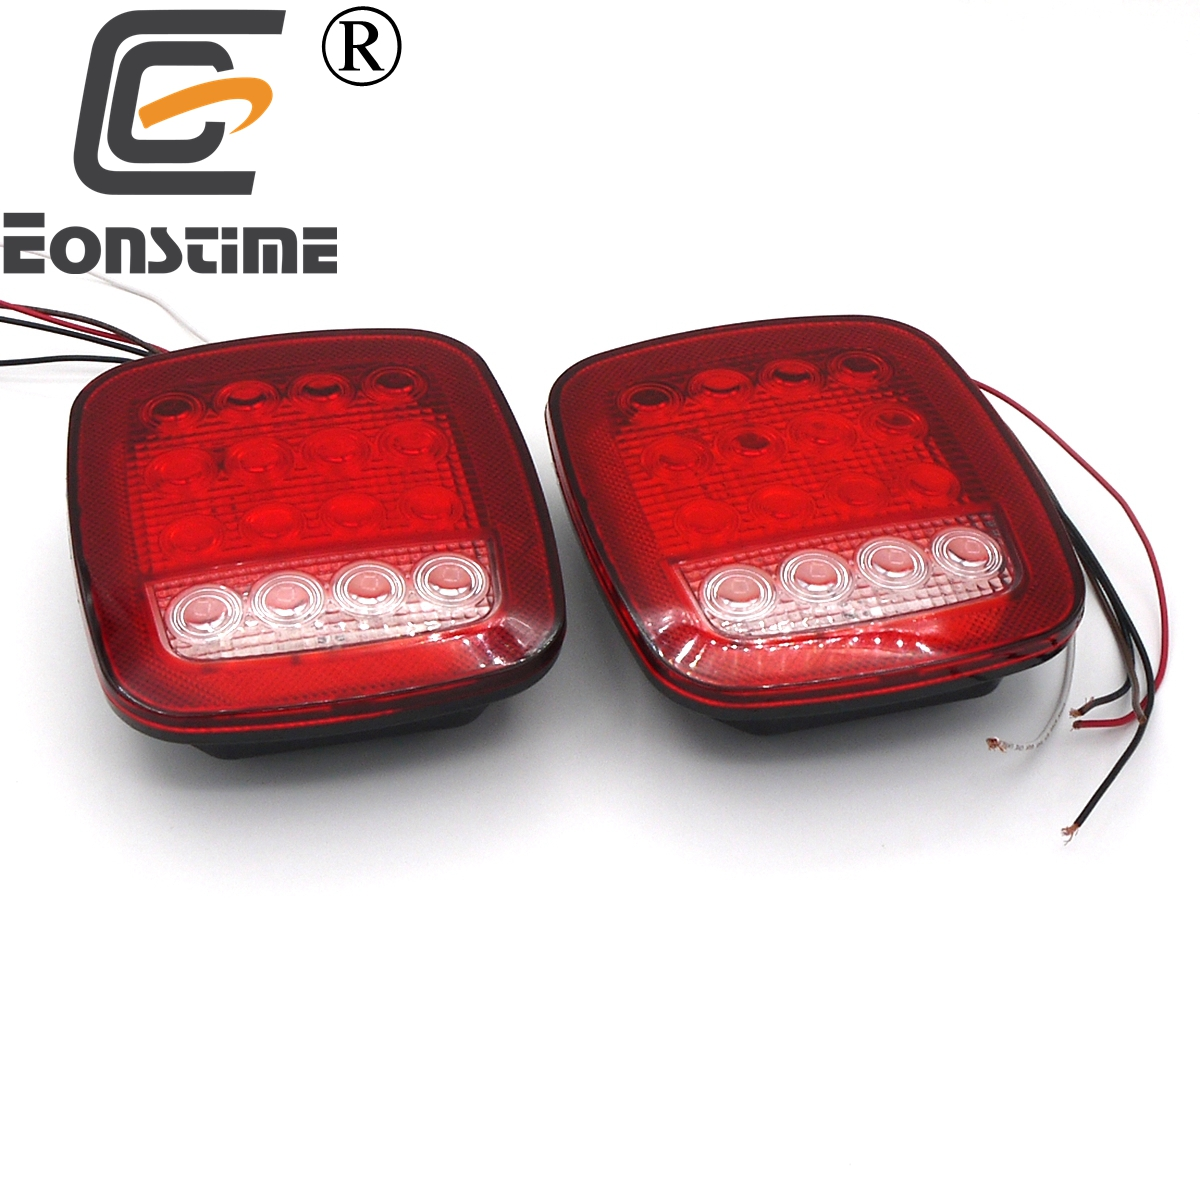 цены Eonstime 2Pcs 12V 16 LED Red/White Truck Trailer Boat Stop Turn Tail Light Reverse Light Lamp Waterproof